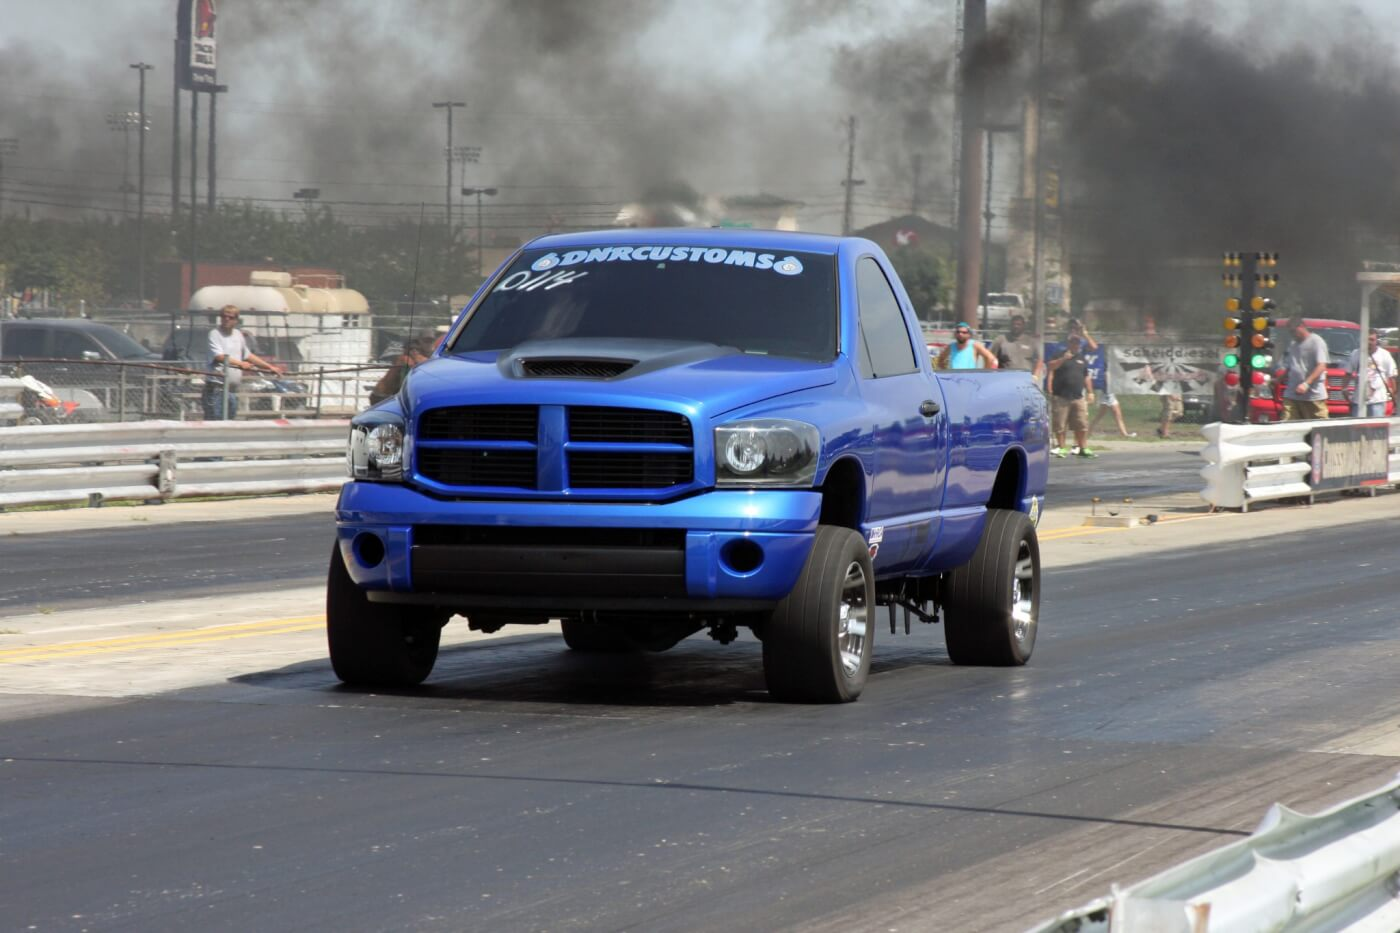 Derek Rose blasts down the track at the 2014 Scheid Diesel Extravaganza on the way to a win in the 6.60 Index class.